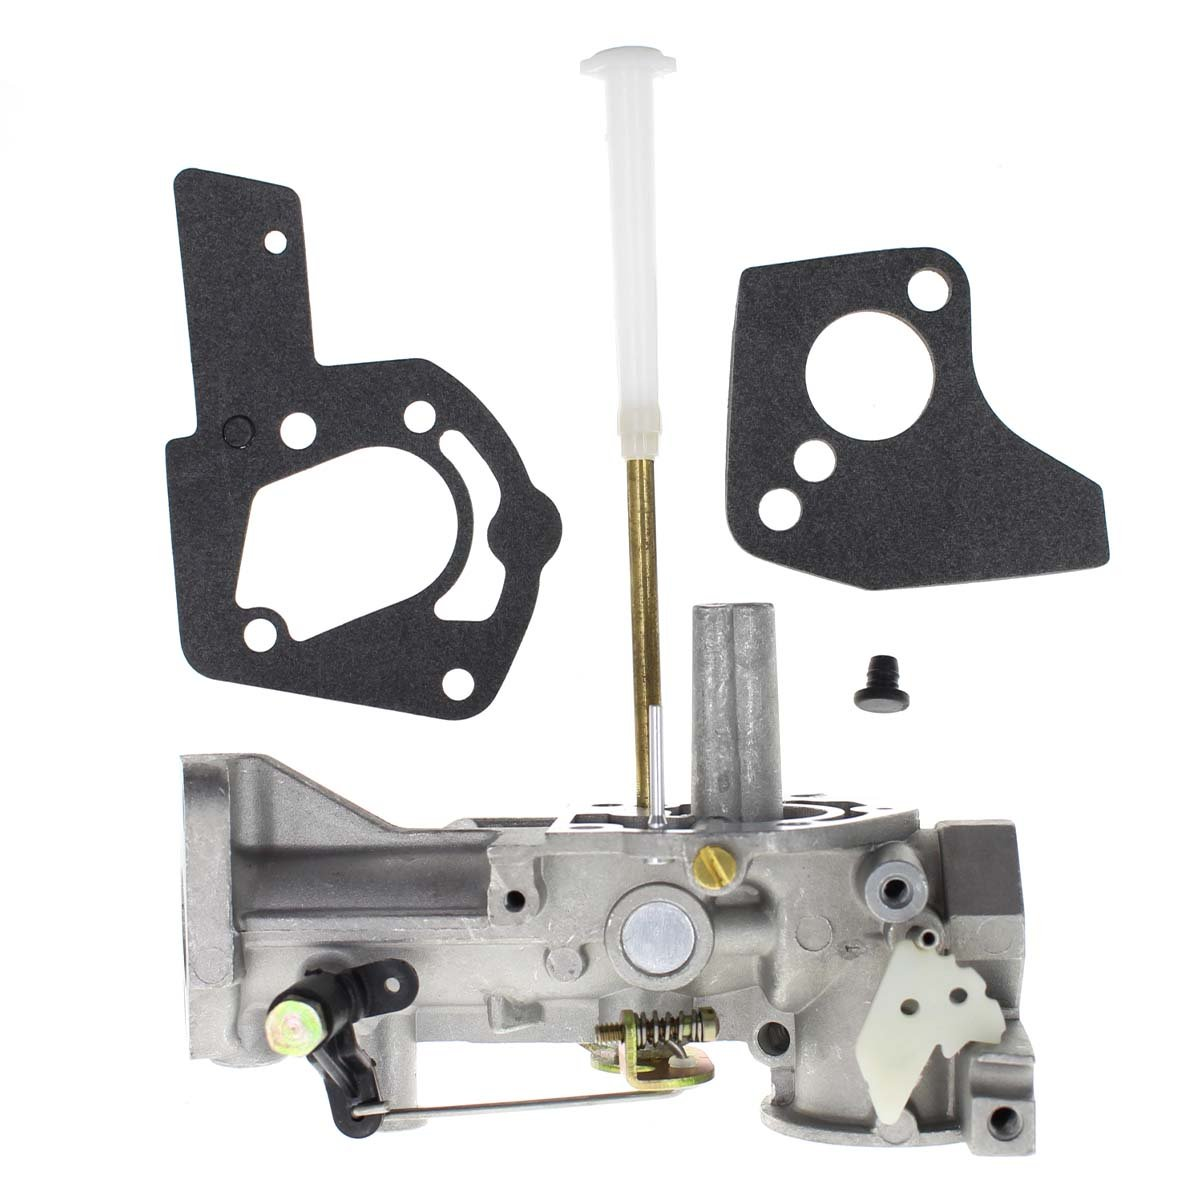 Carbhub 498298 Carburetor for Briggs & Stratton 498298 692784 495951 492611 490533 495426 5HP Engine Carb with Gasket